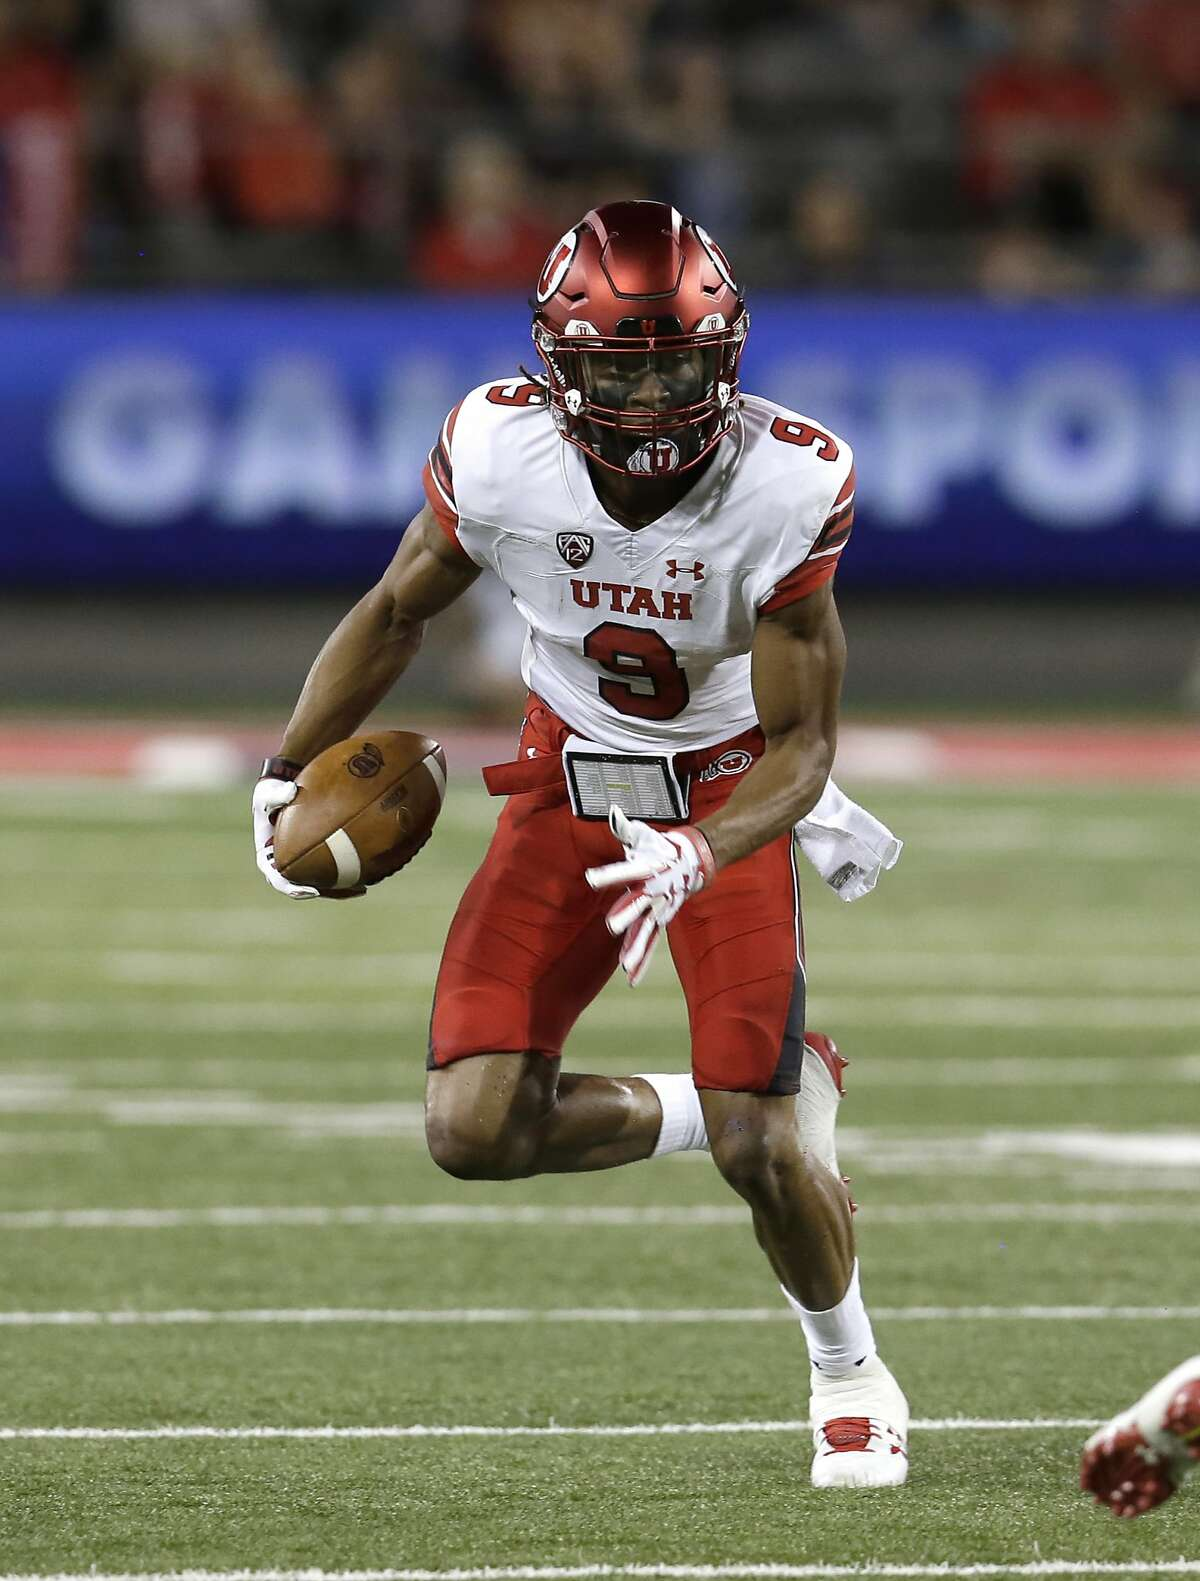 Utah wide receiver Darren Carrington II (9) in the second half during an NCAA college football game against Arizona, Friday, Sept. 22, 2017, in Tucson, Ariz. Utah defeated Arizona 30-24. (AP Photo/Rick Scuteri)